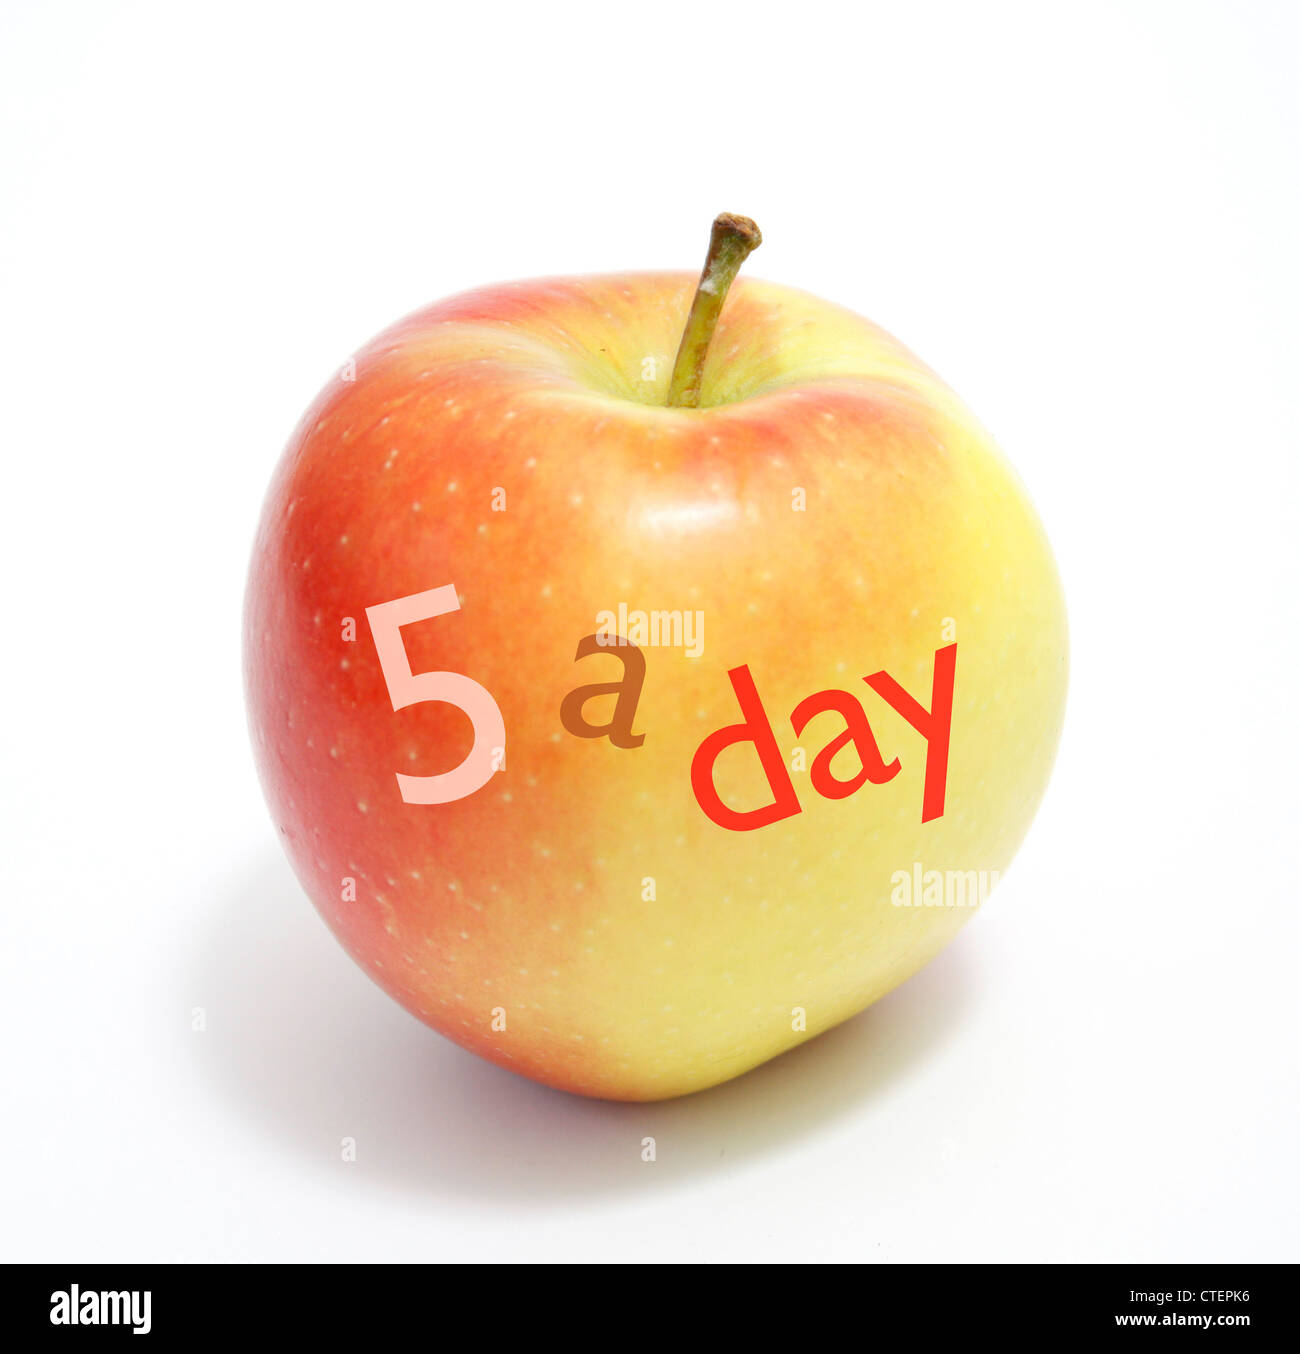 5 a day - Stock Image